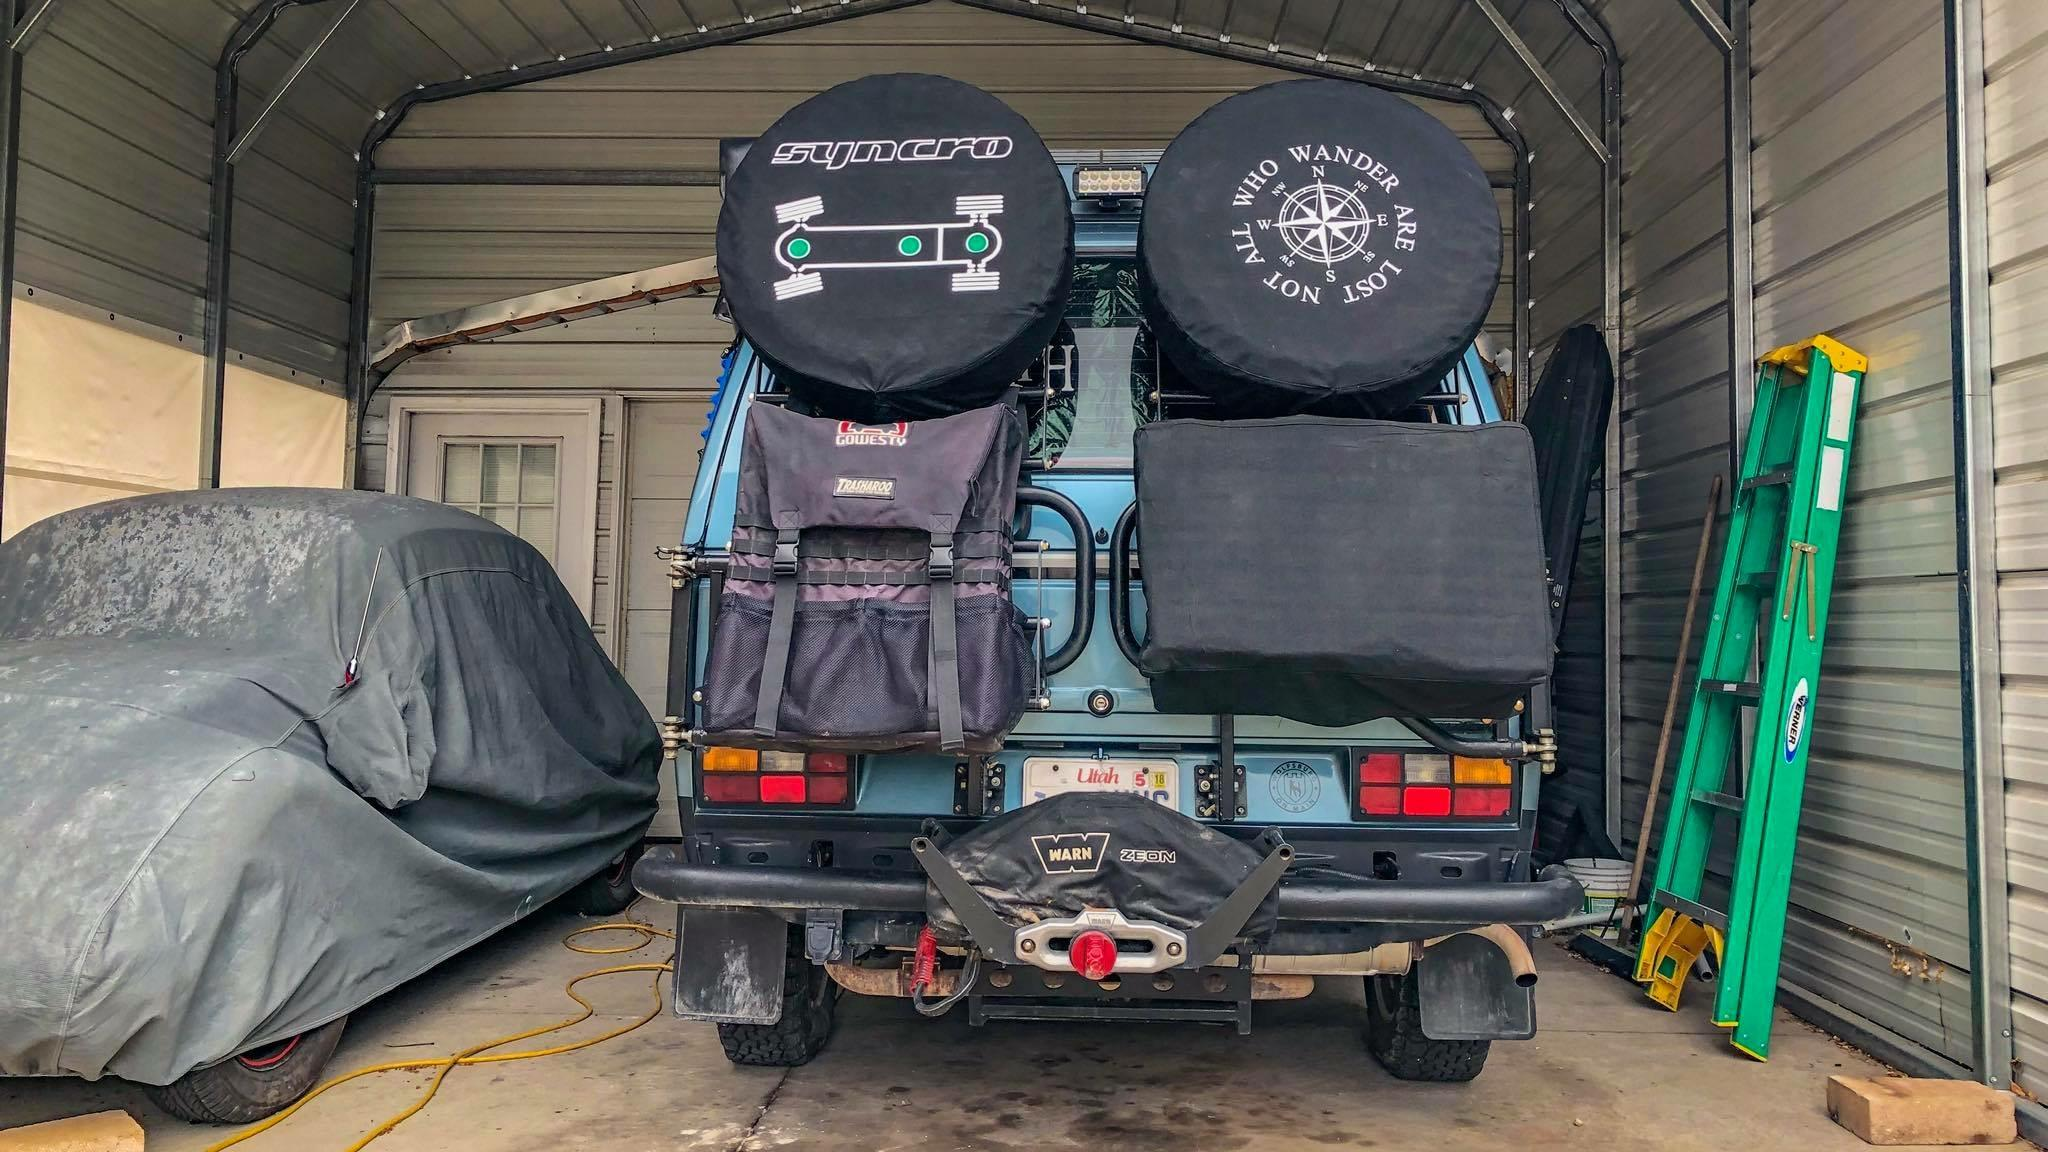 Vanagon - View topic - RMW/VC Switchback Rack System